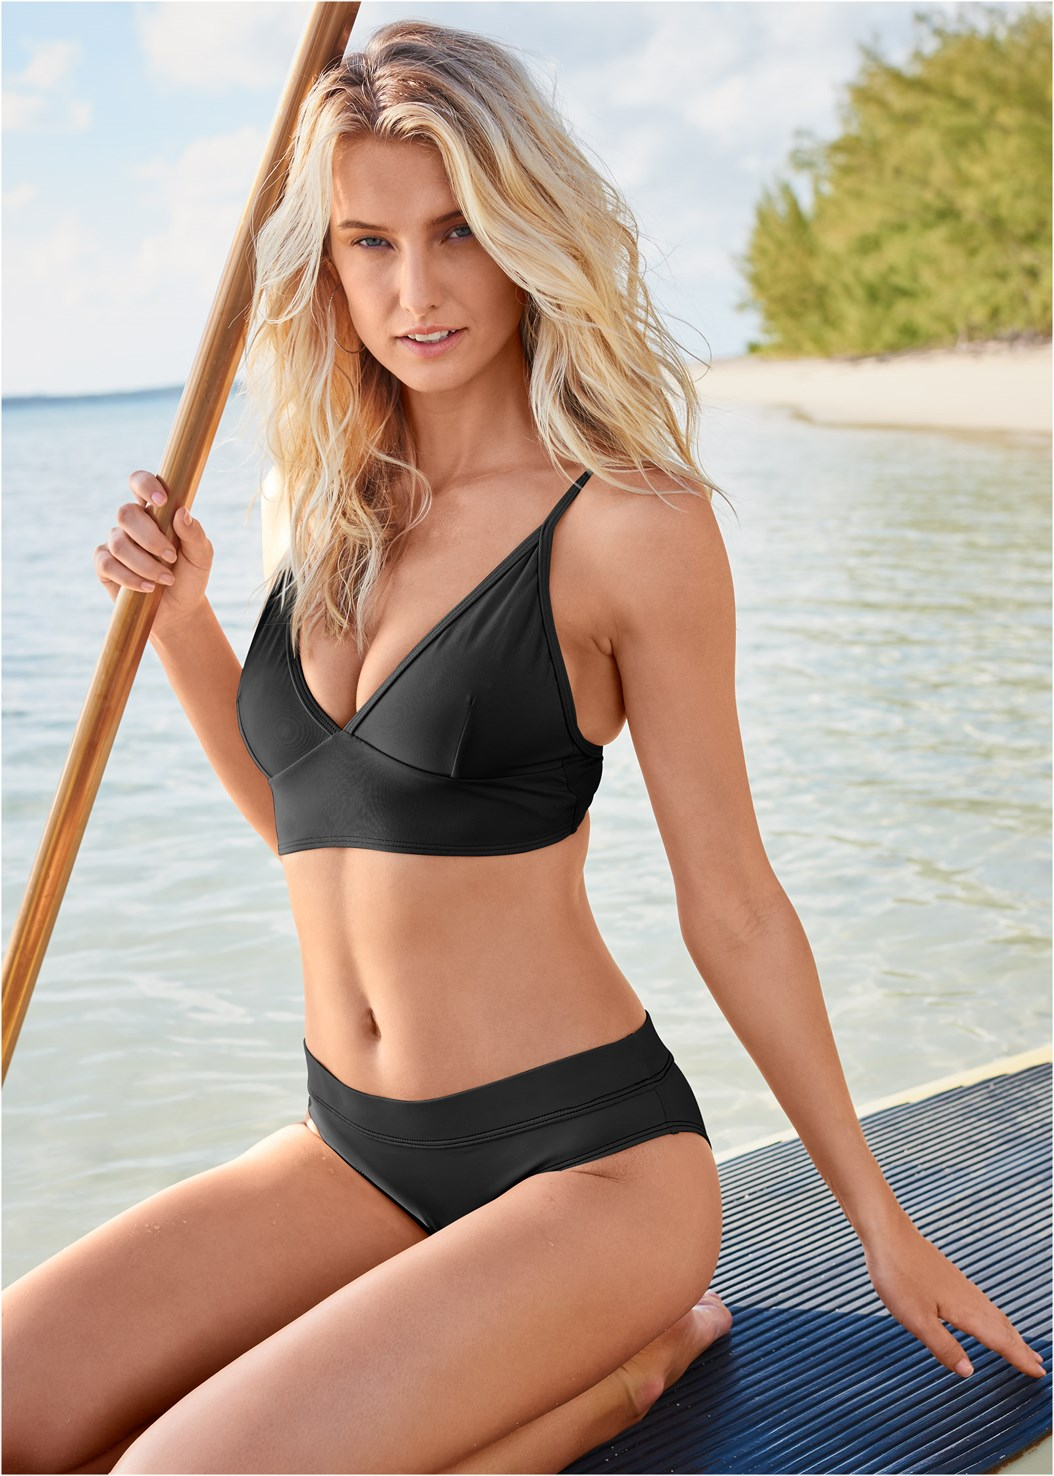 All Day Banded Bottom,By The Sea Triangle Top,All Day Halter Top,Bon Voyage Bandeau Top,Sustainable Crisscross Top,Marilyn Underwire Push Up Halter Top,Jillian Underwire Top,Sheer Robe Cover-Up,Circular Straw Bag